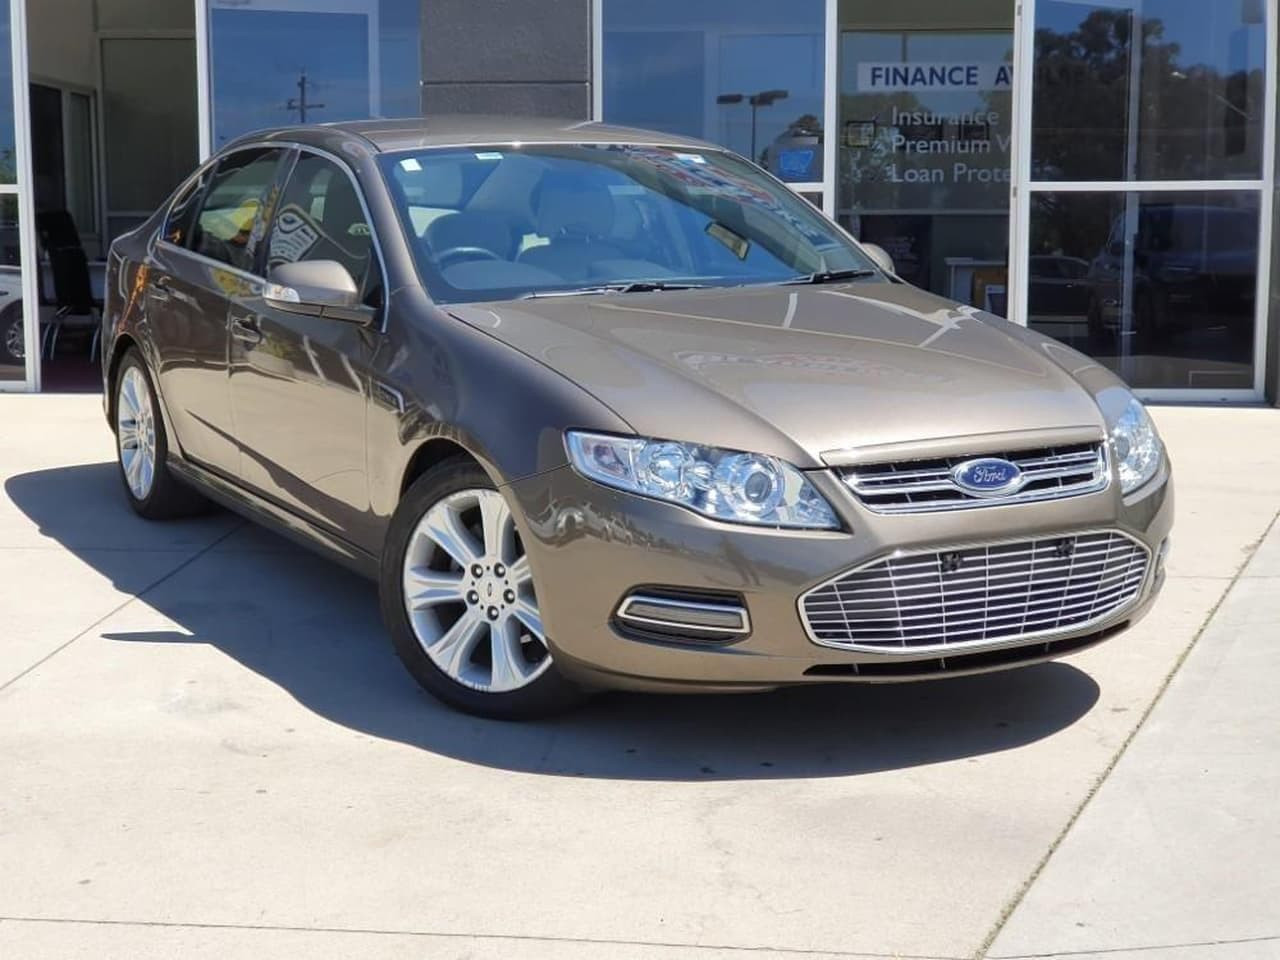 2012 Ford Falcon FG MKII G6E Sedan